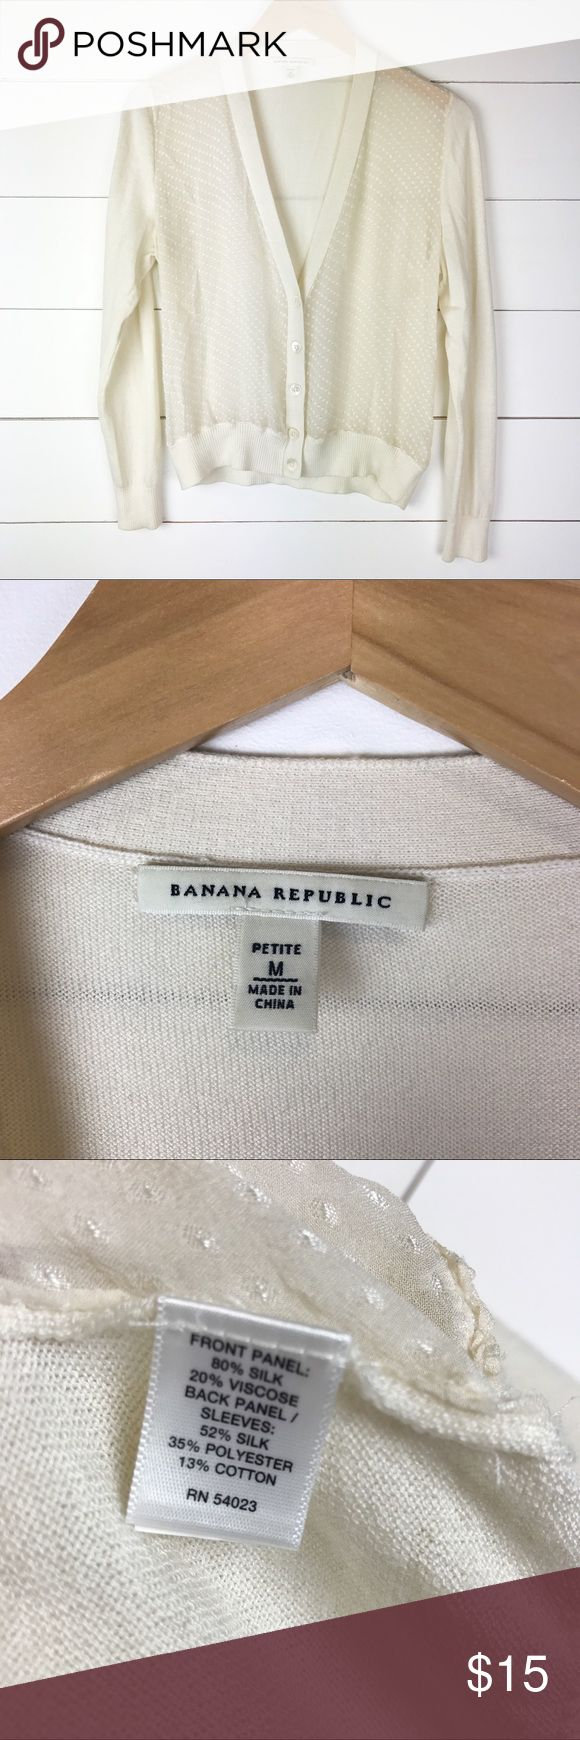 """Banana Republic Petite Cardigan Sheer Front Silk Gorgeous Banana Republic sheer front cardigan in petite size medium.  Silk blend with dainty dots in the sheer fabric.  MEASUREMENTS  Underarm to Underarm 20""""  Underarm to End of Sleeve 17""""  Length 23""""   A6 Banana Republic Sweaters Cardigans"""